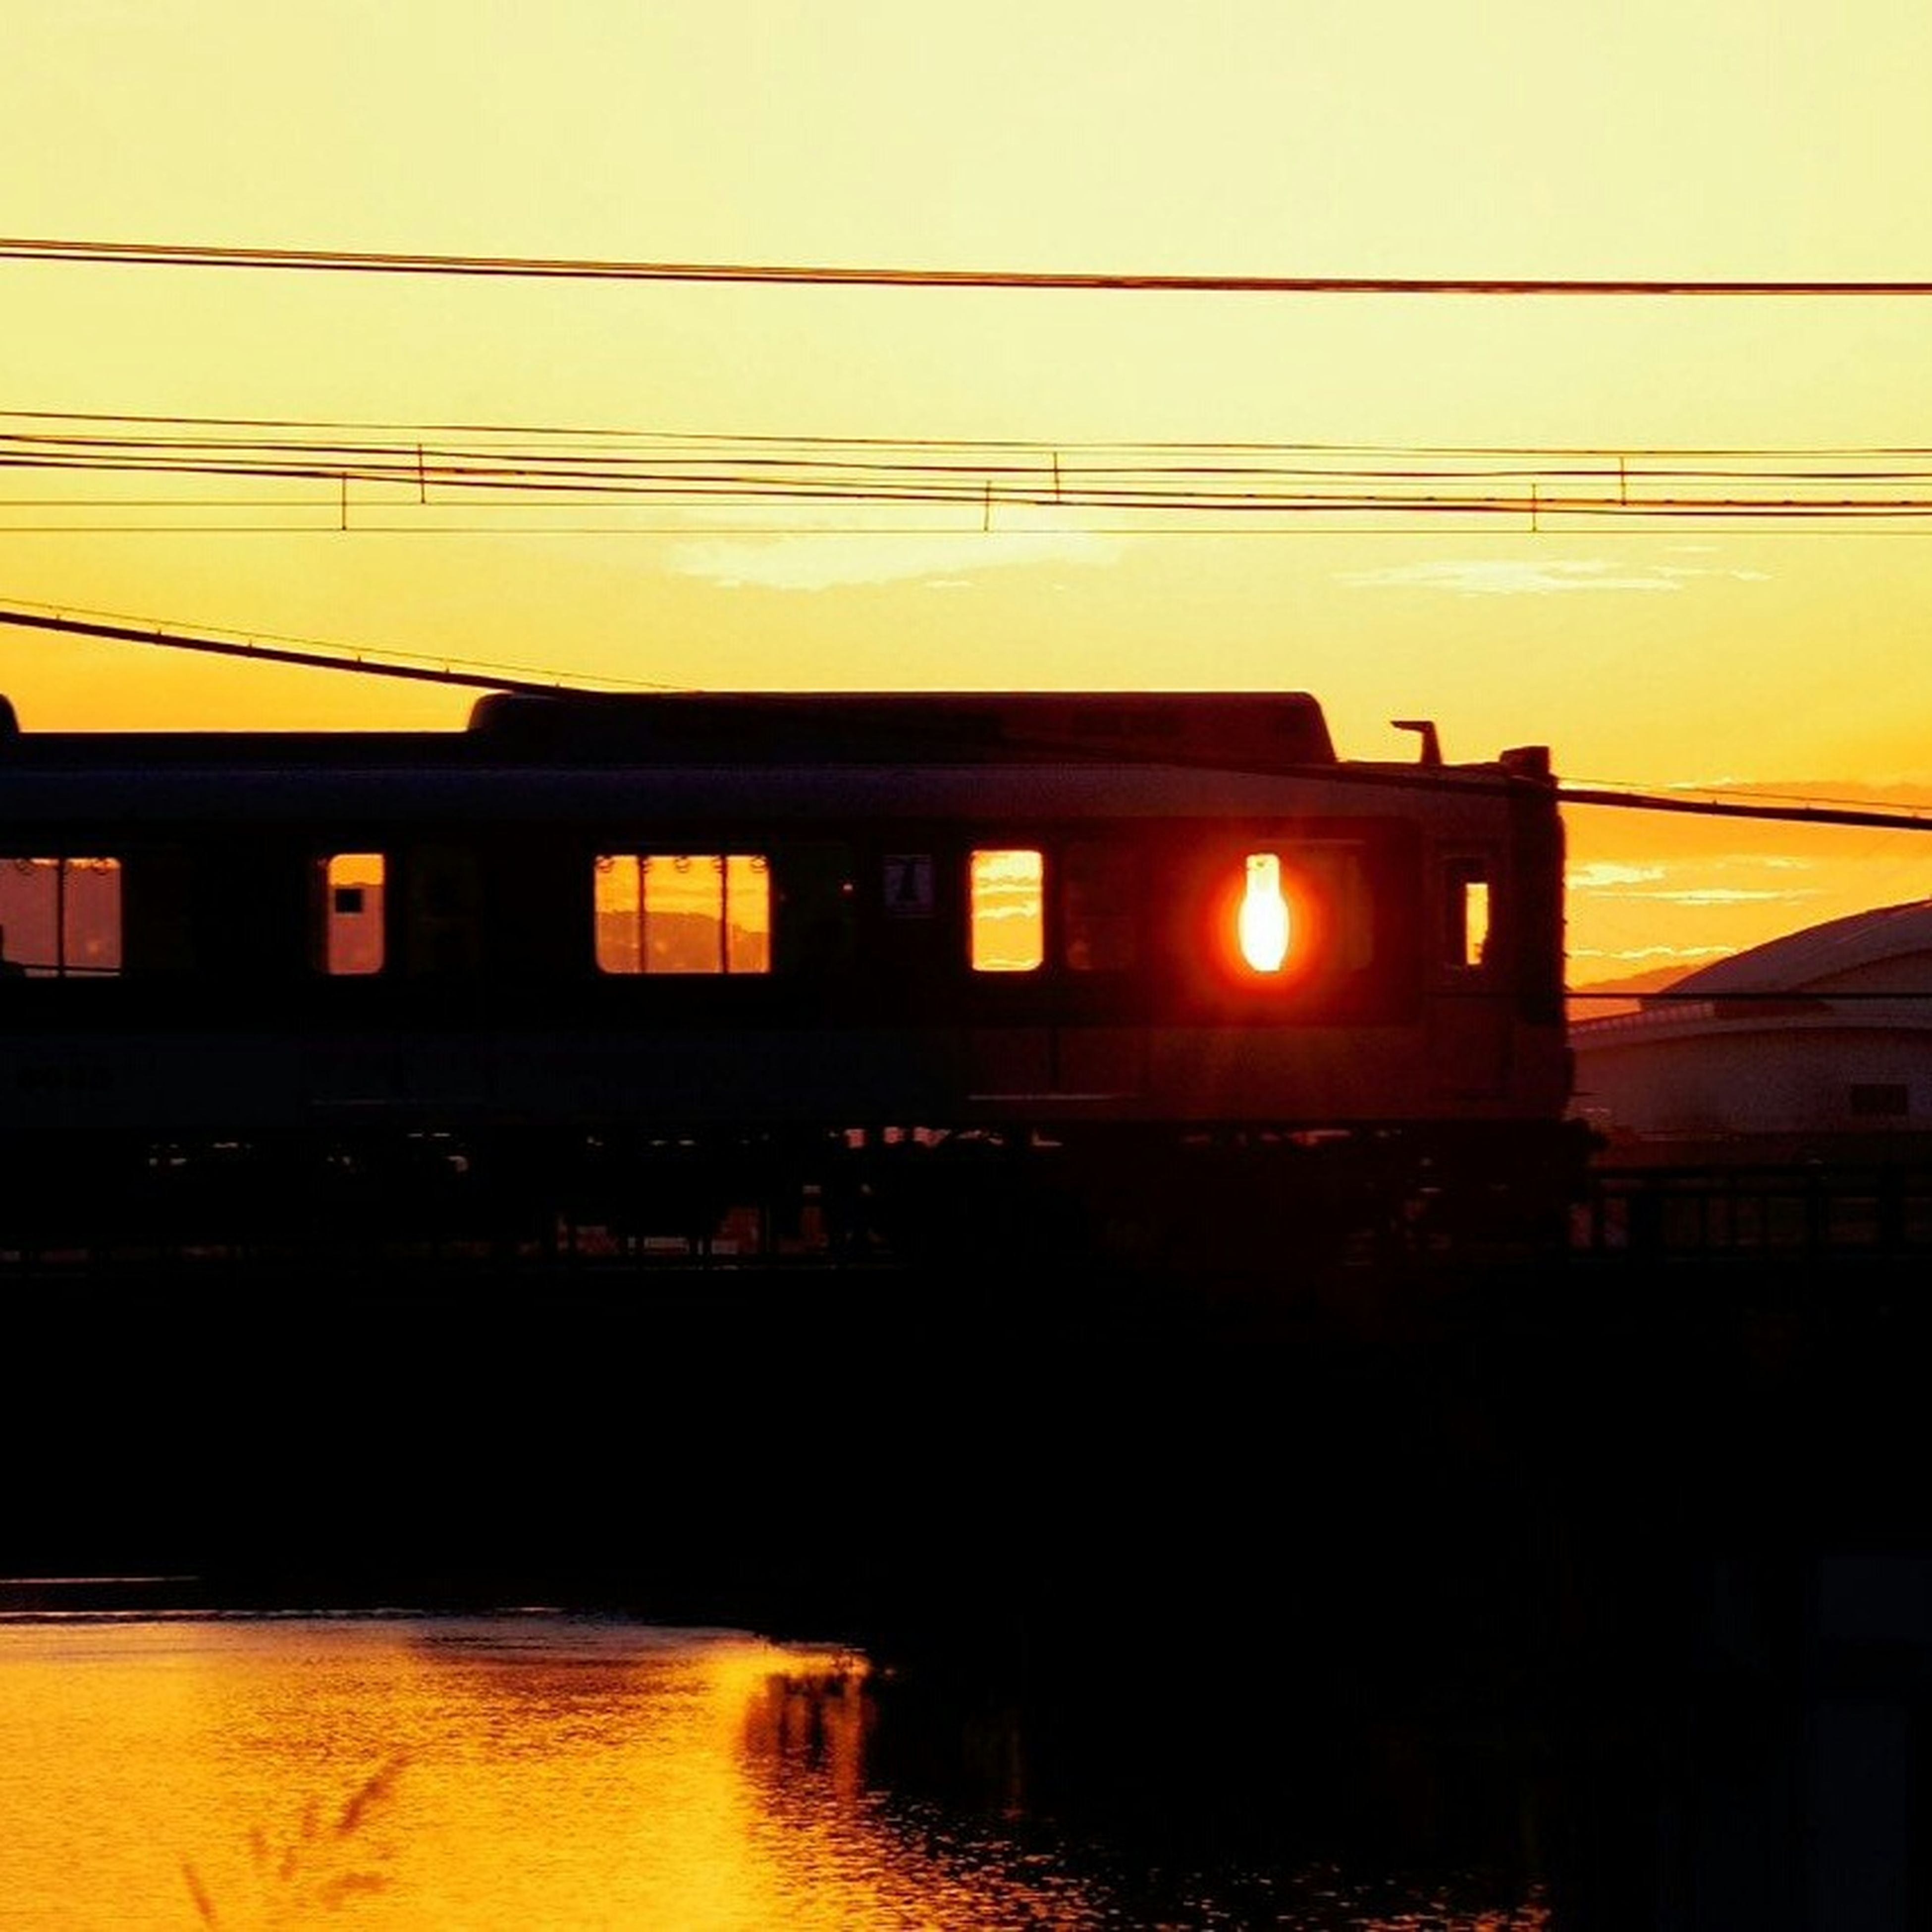 sunset, built structure, architecture, building exterior, silhouette, power line, orange color, connection, sky, cable, electricity pylon, building, electricity, illuminated, no people, reflection, outdoors, city, bridge - man made structure, low angle view